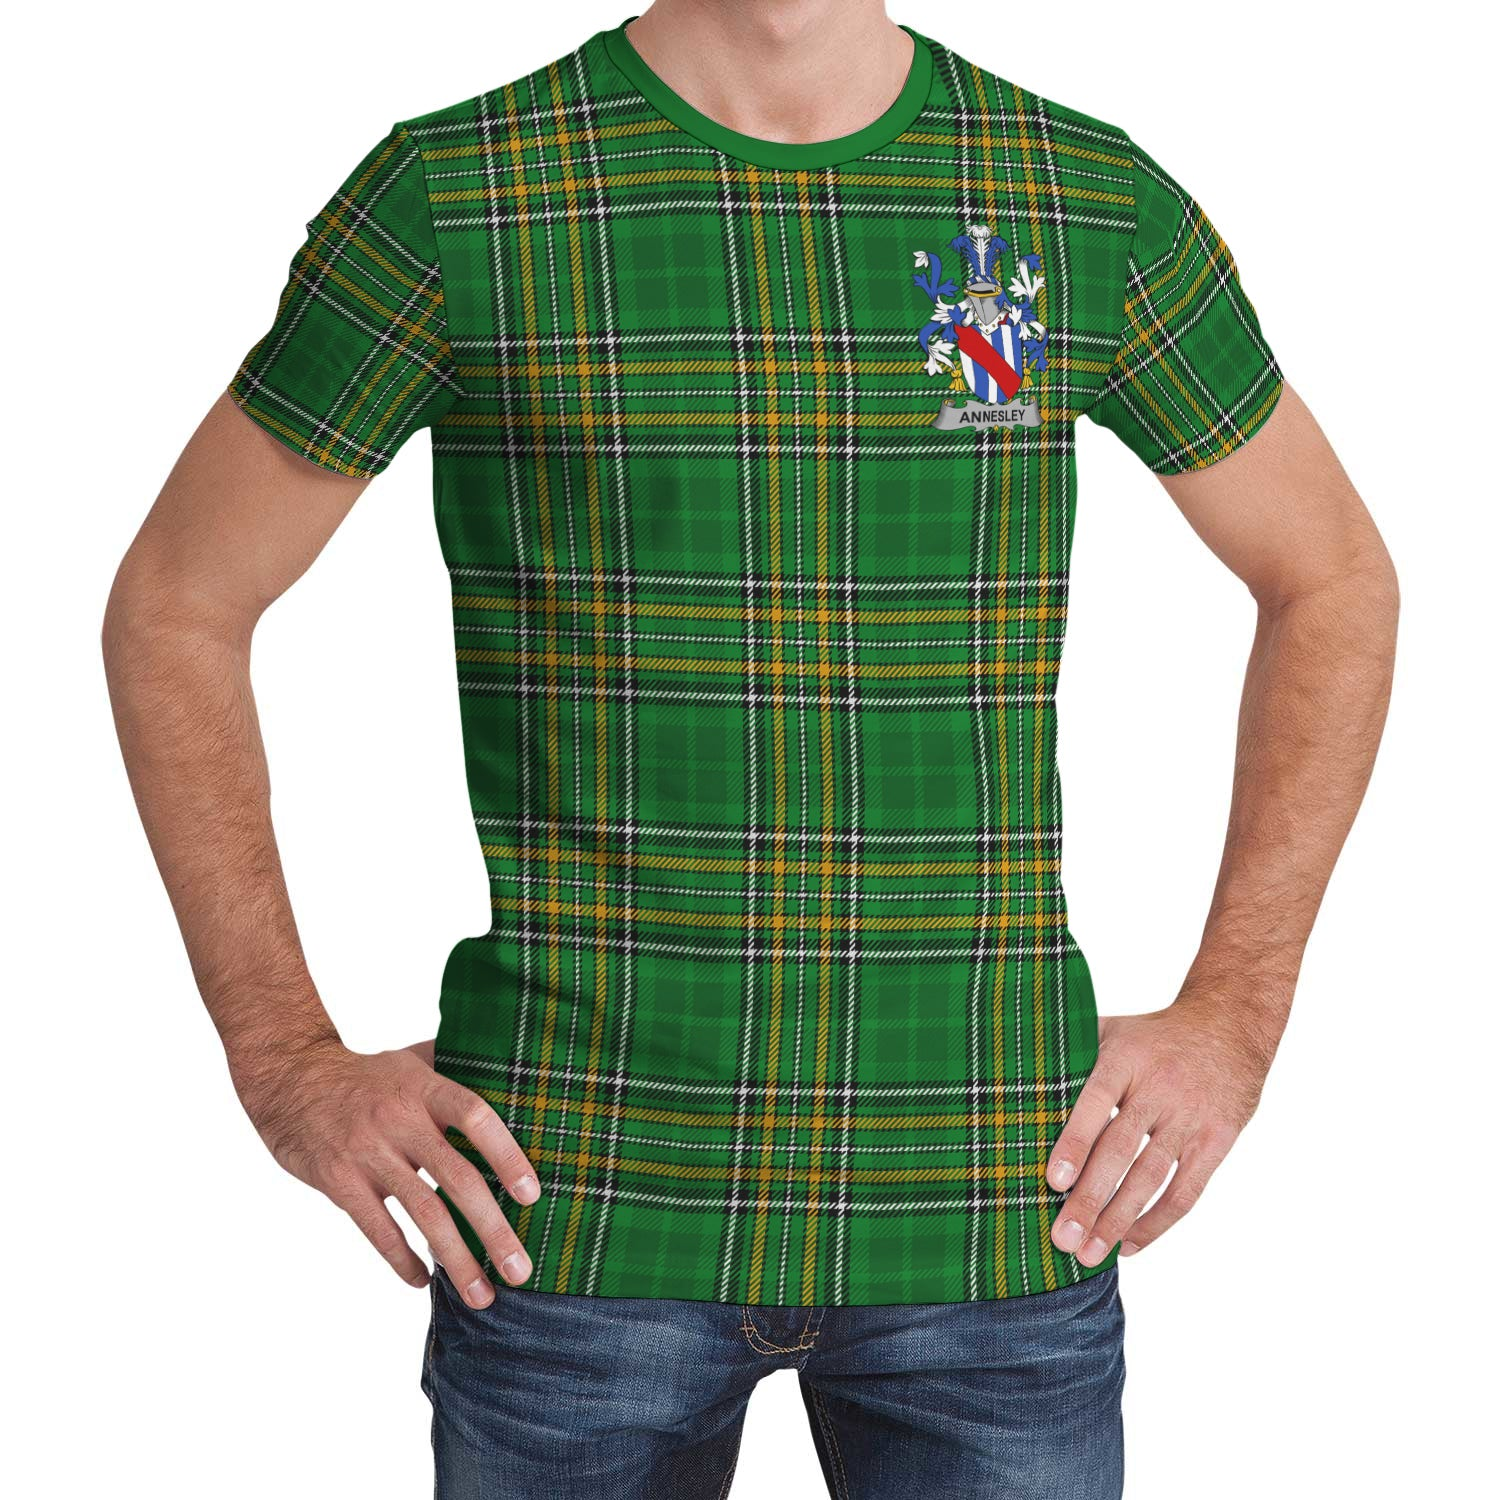 Annesley Ireland T-Shirt Irish National Tartan | Over 1400 Crests | Clothing | Apparel